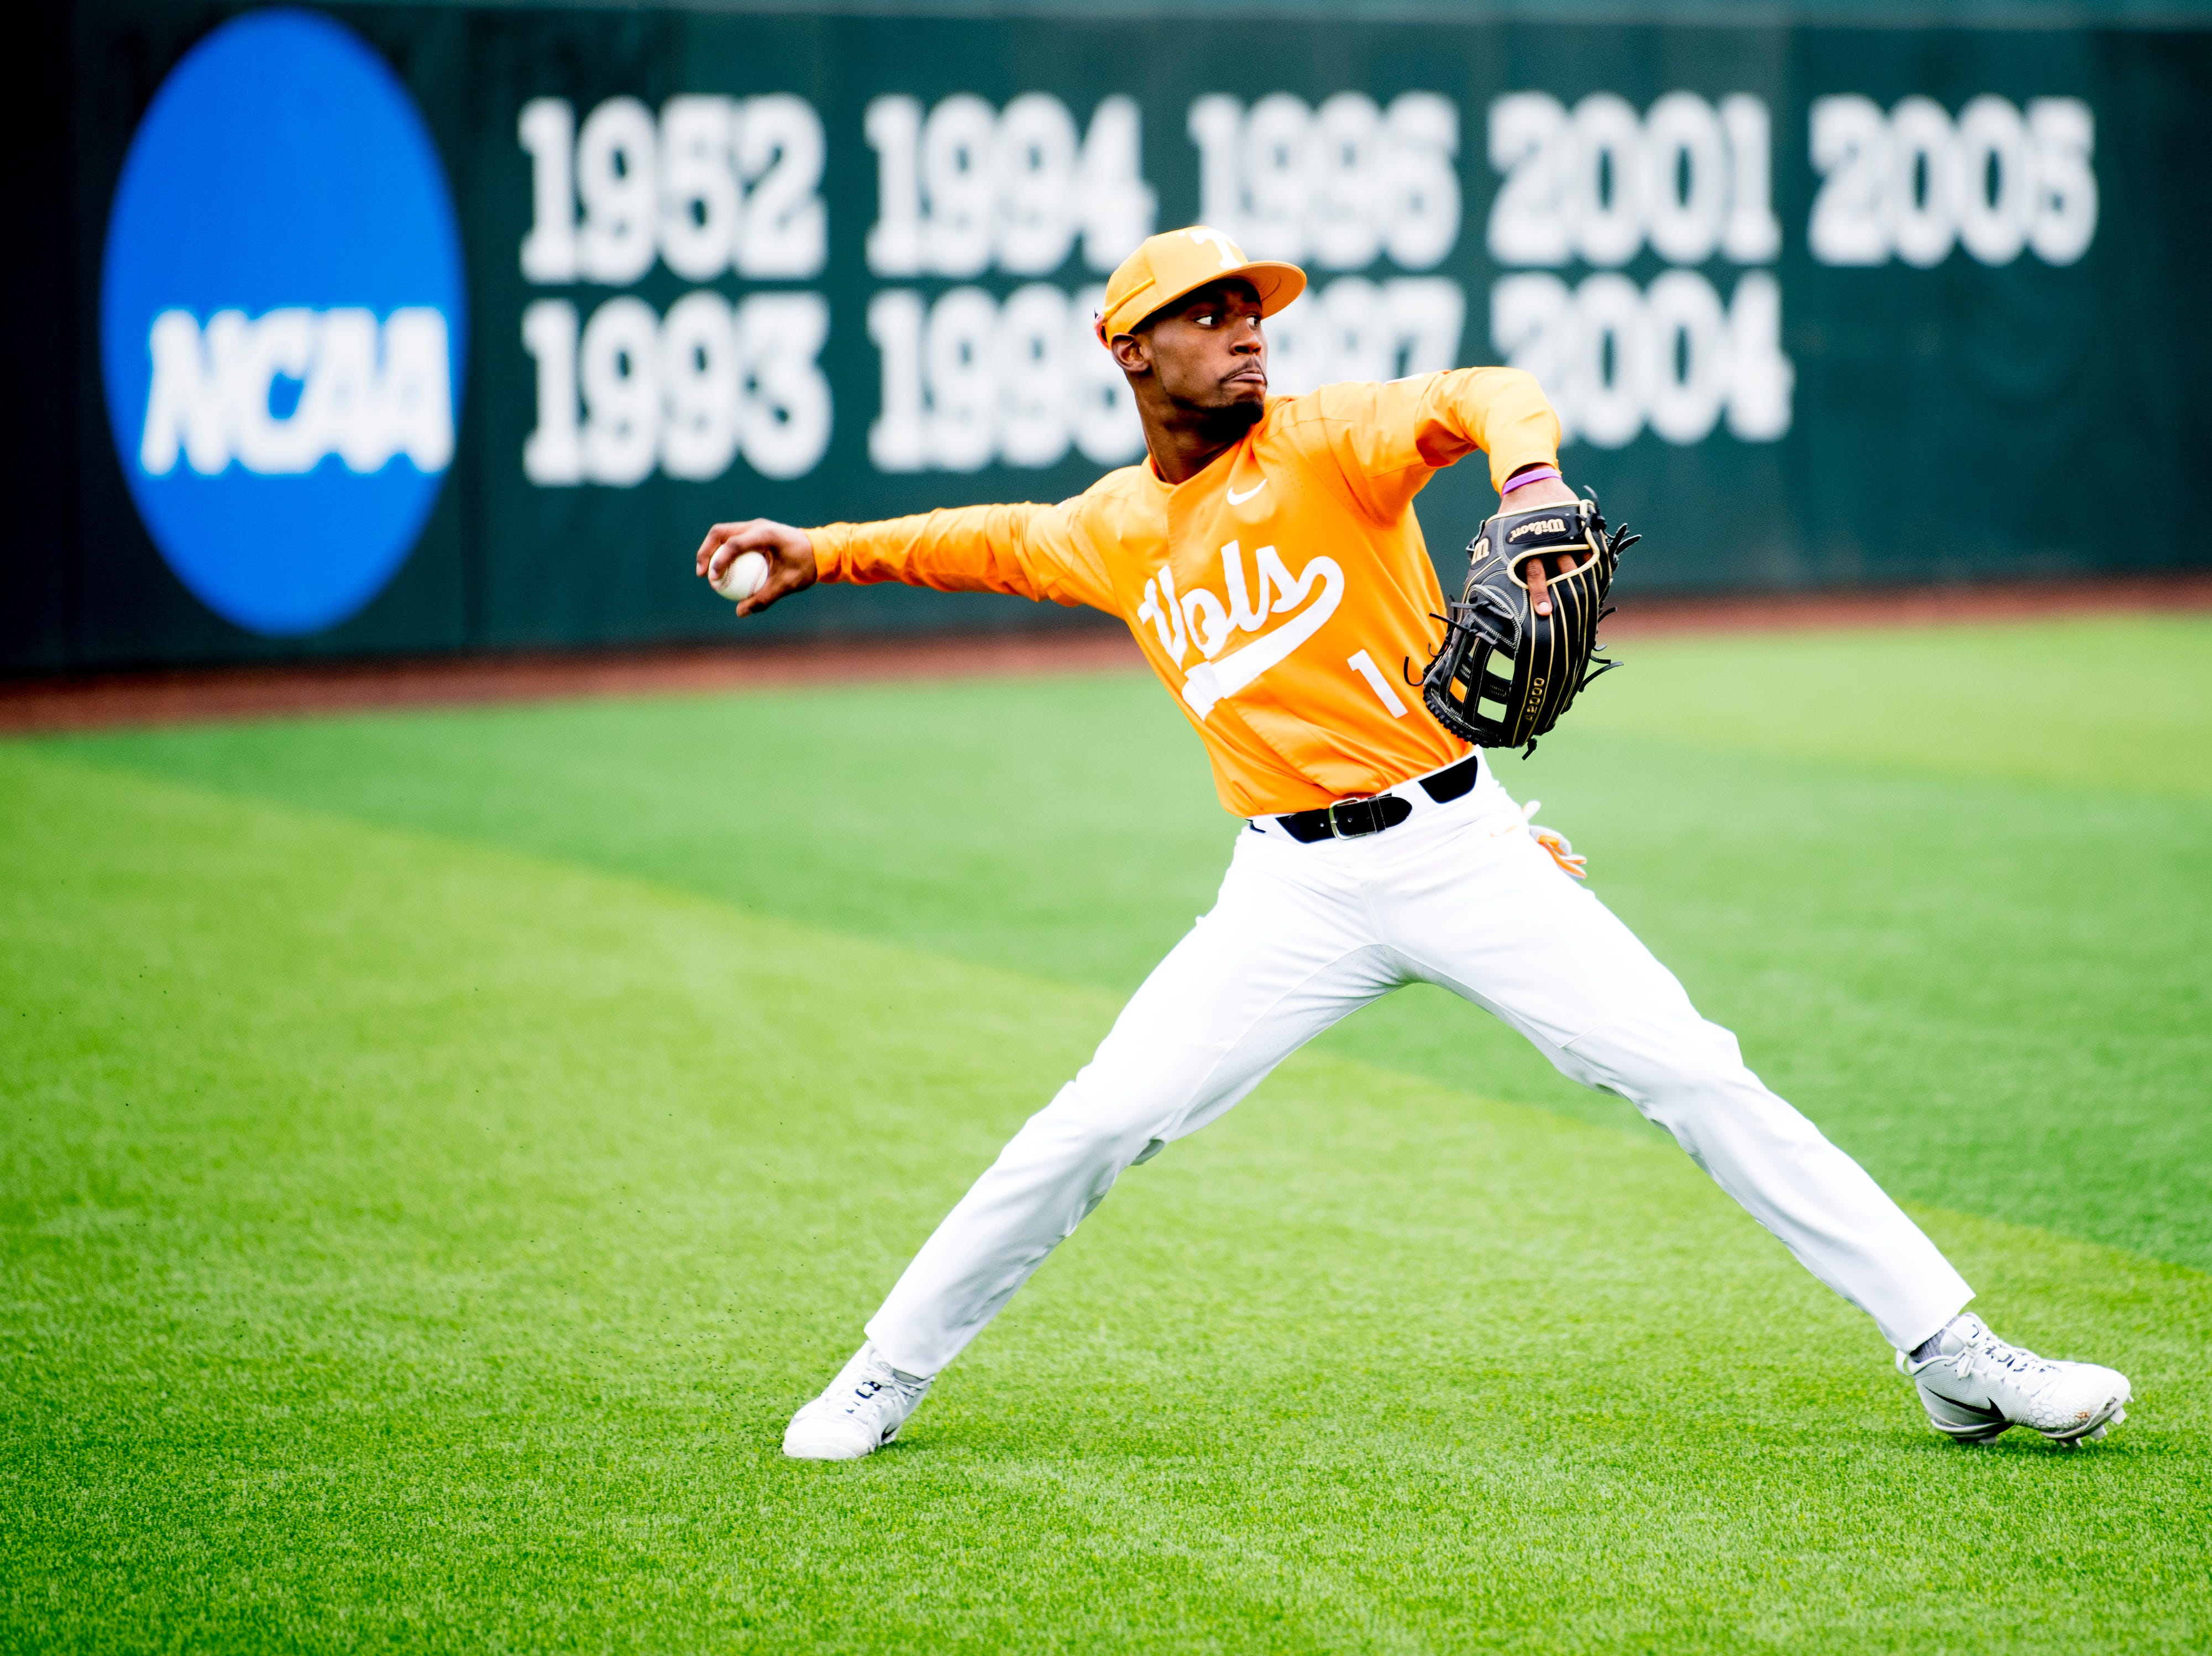 Tennessee outfielder/infielder Al Soularie (1) throws the ball into the infield during a Tennessee baseball home opener game against Appalachian State at Lindsey Nelson Stadium in Knoxville, Tennessee on Saturday, February 16, 2019.